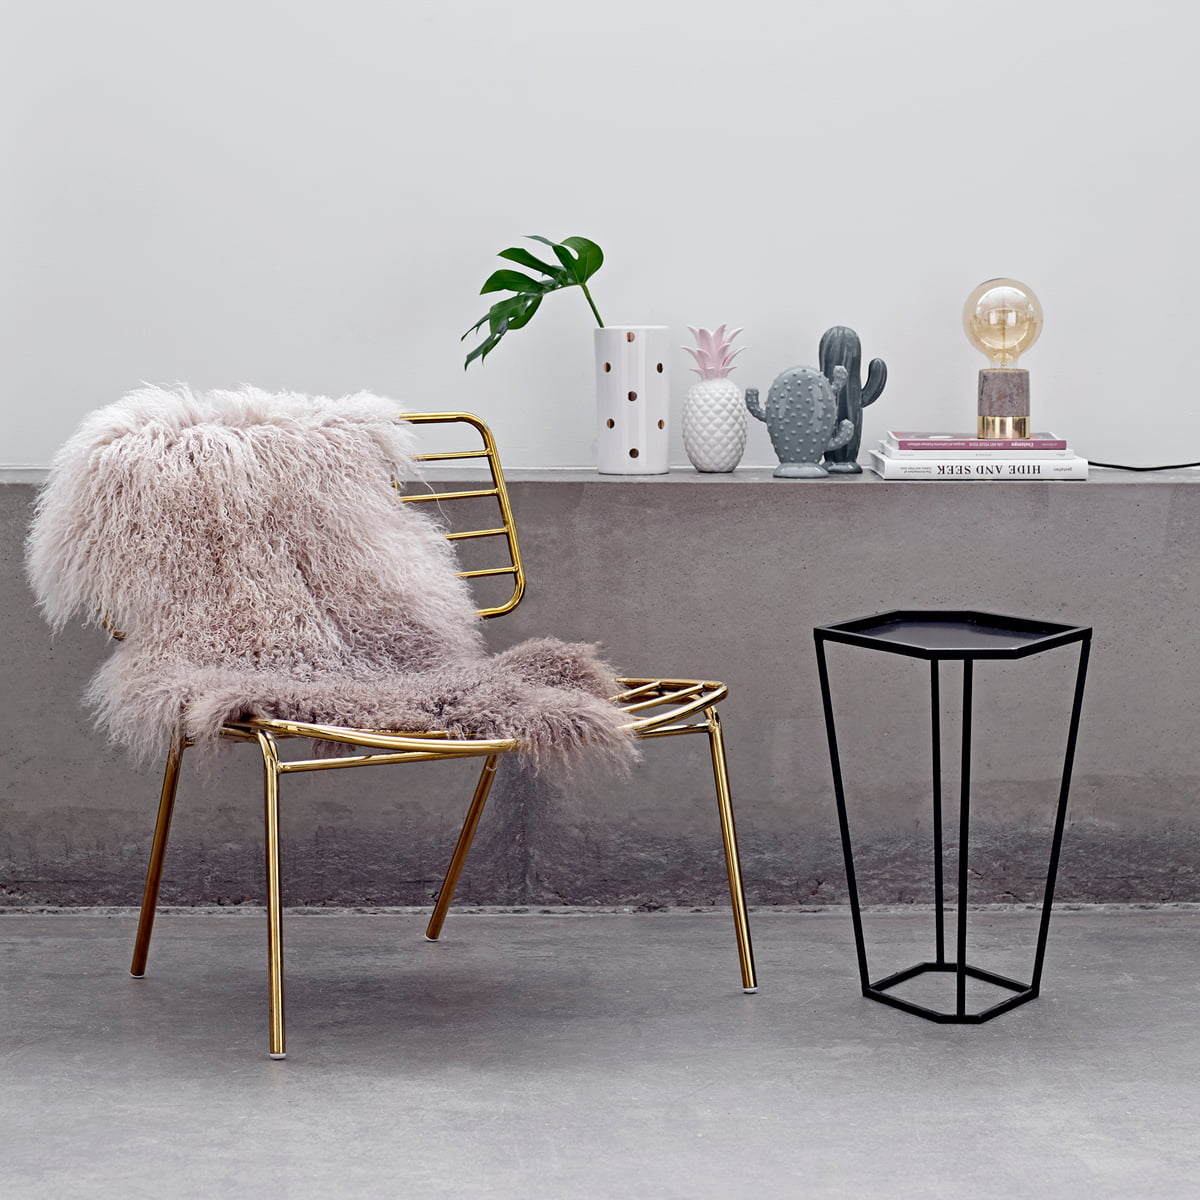 The Bloomingville   Decoration Cactus, Decorative Pineapple And The Tibetan  Lambskin In Dip Dye Stone